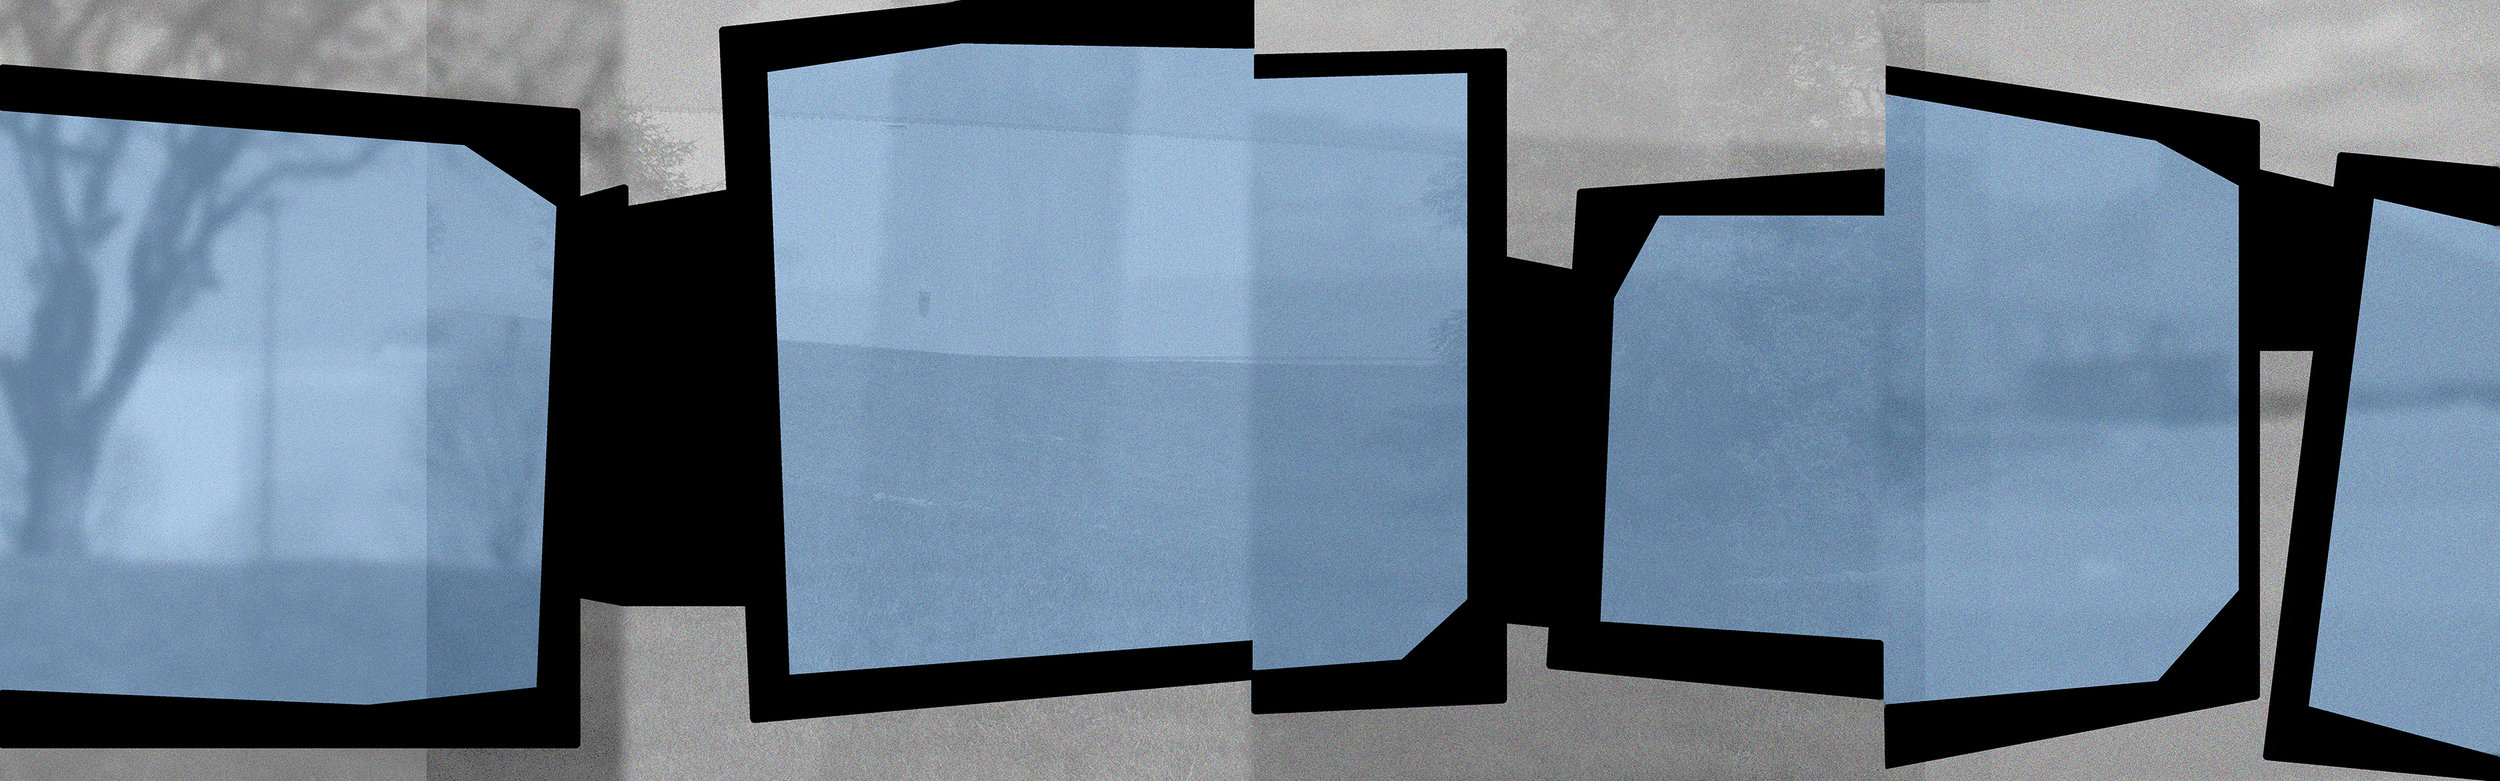 Mobility of Frames P2 | 2017 | archival pigment print | 12 x 47 inches